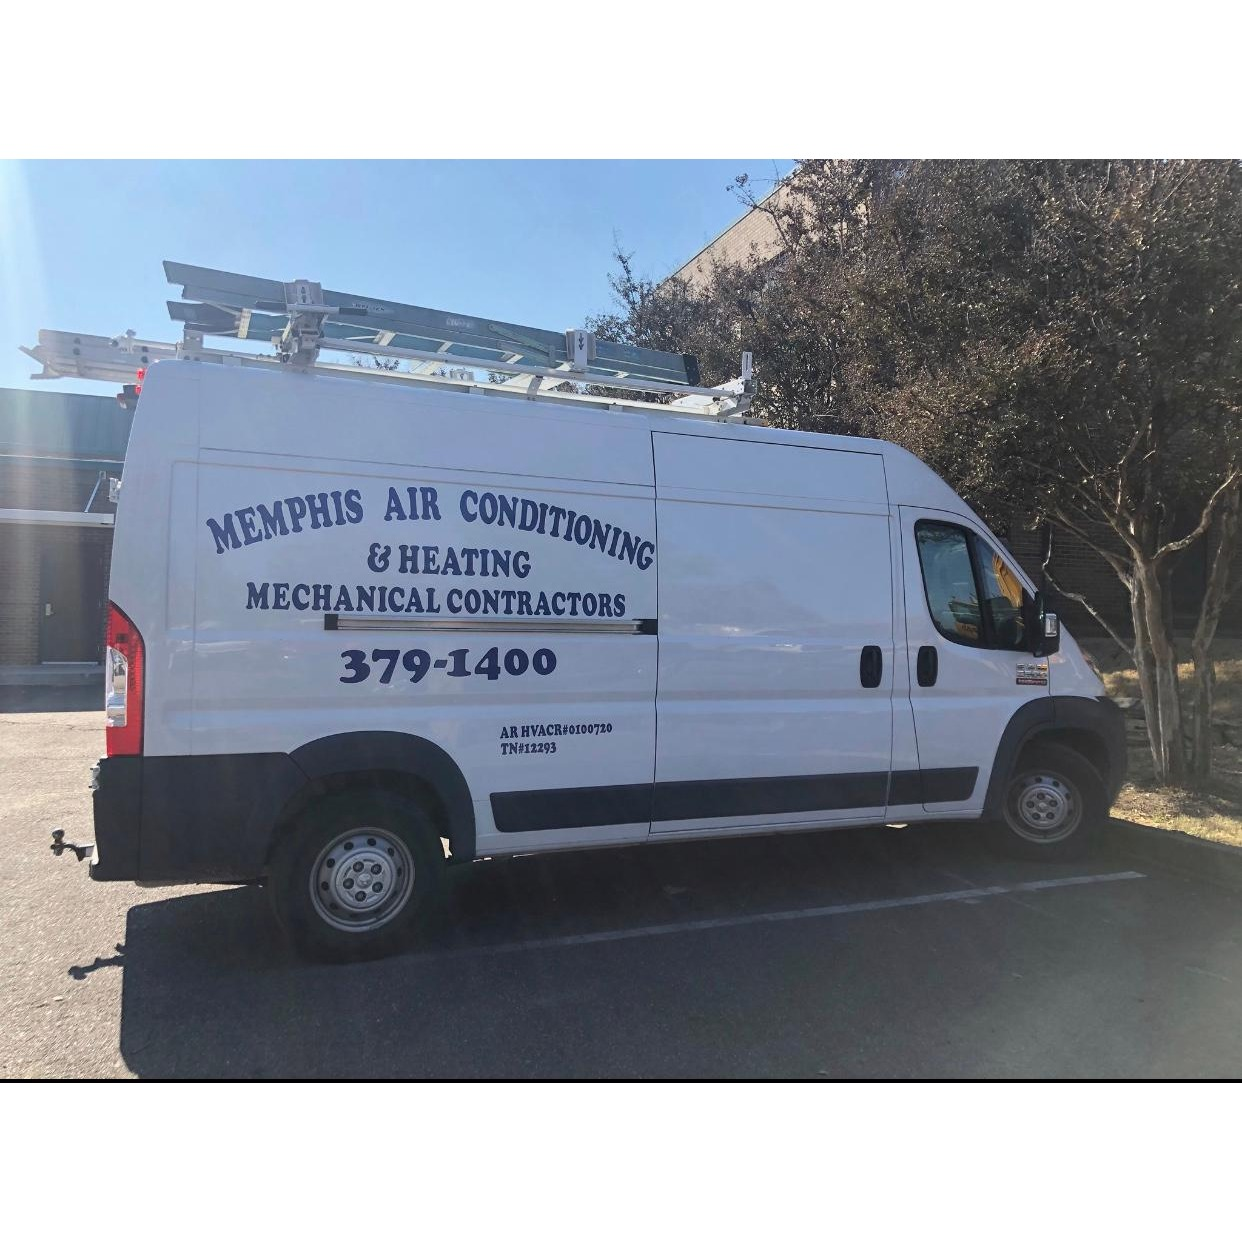 Memphis Air Conditioning and Heating